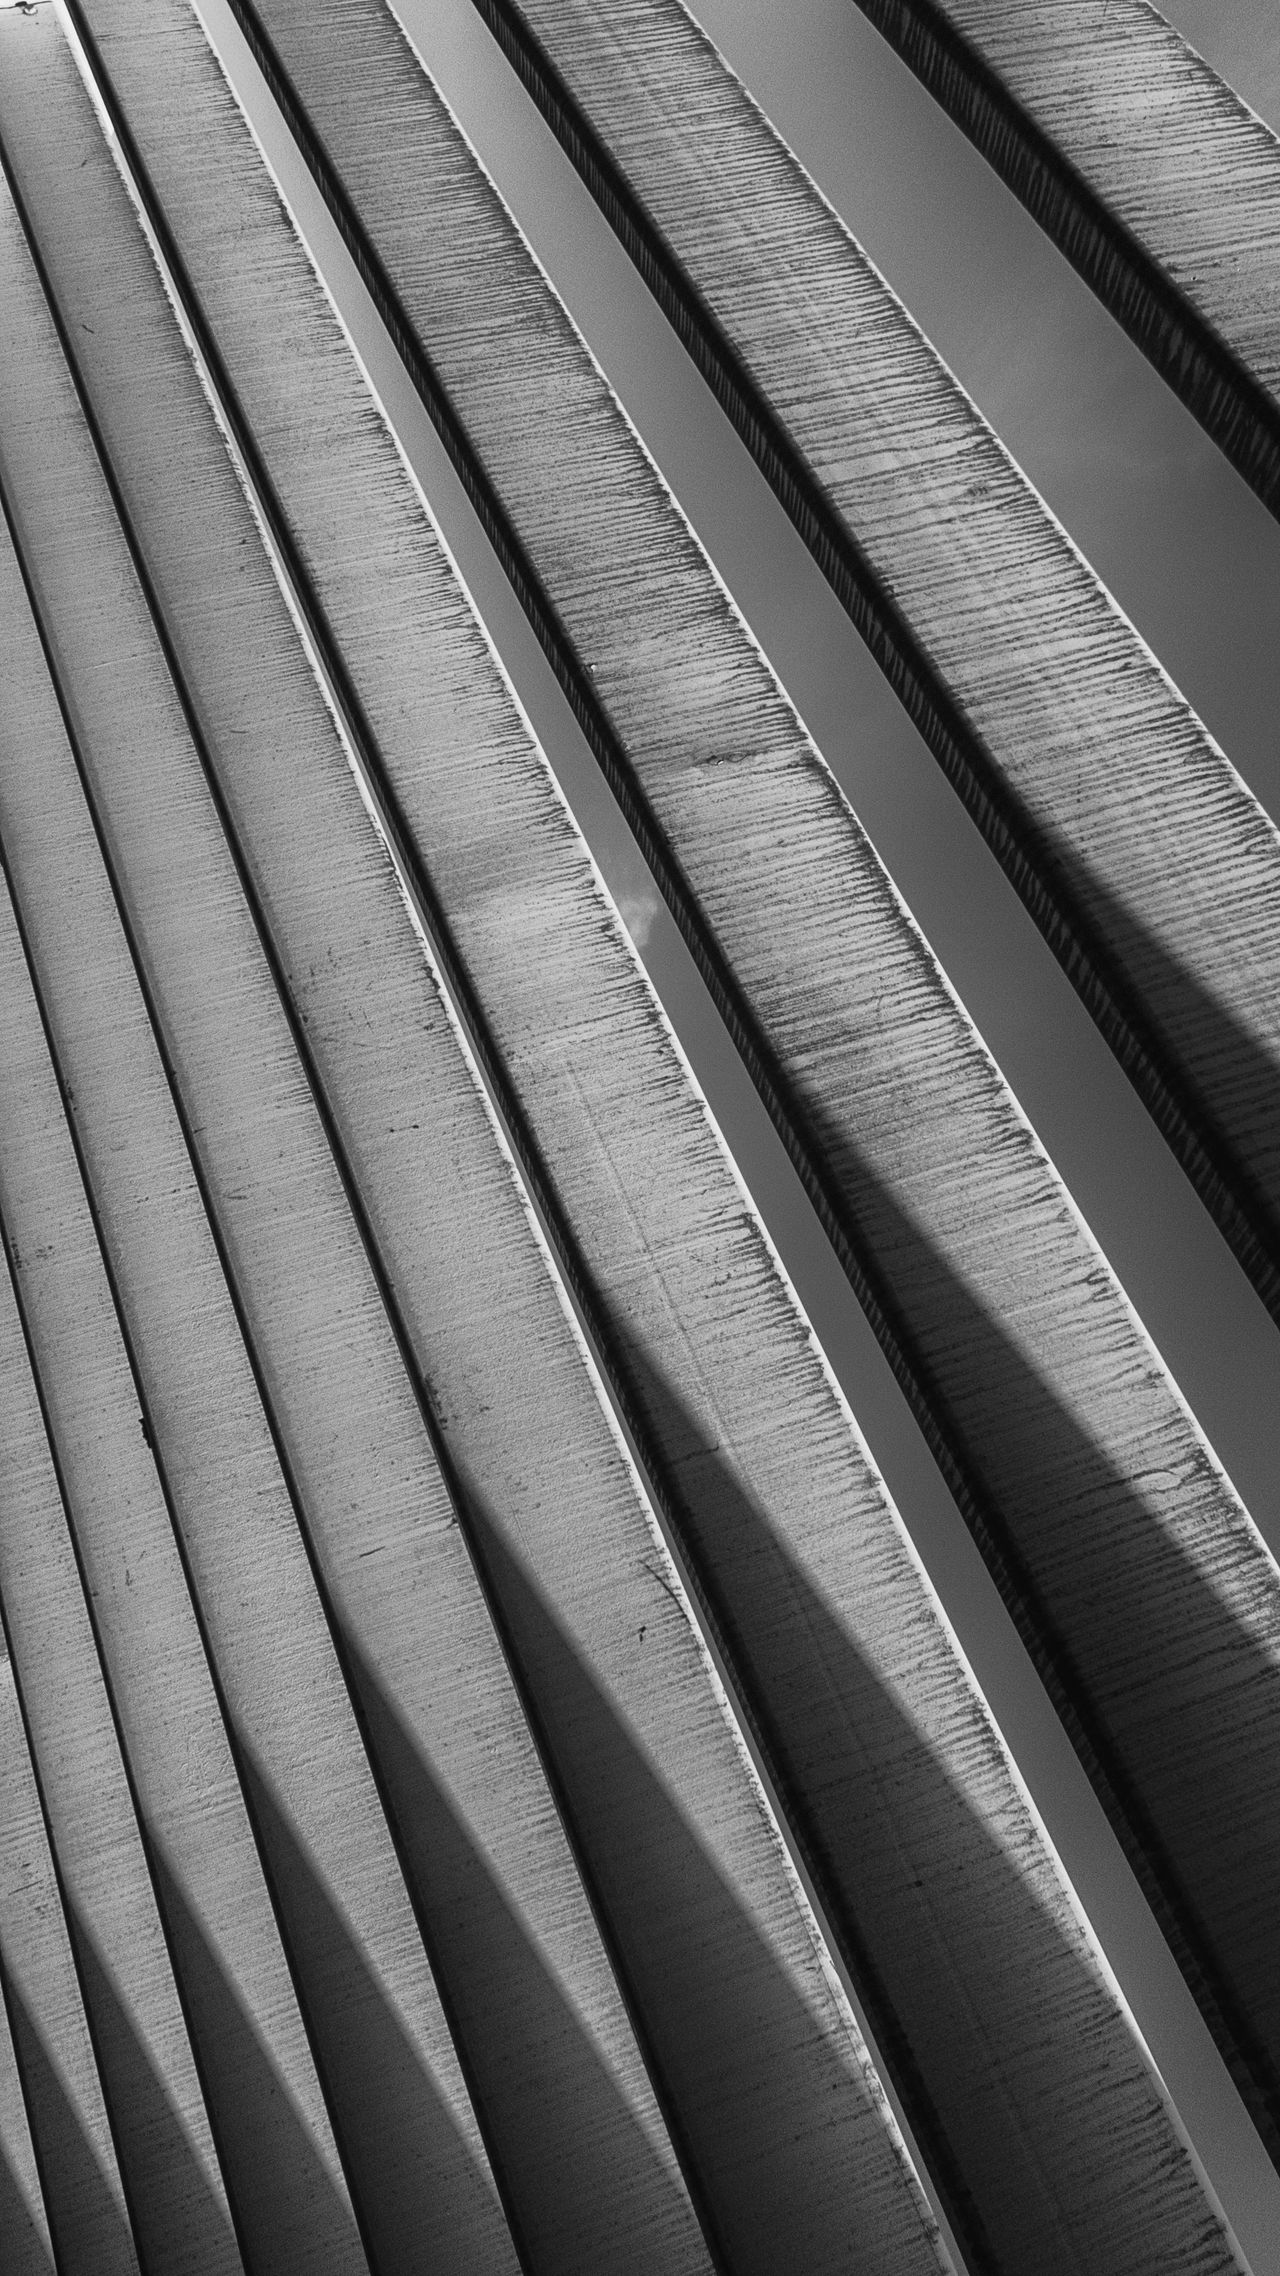 I amsterdam I Amsterdam Pivotal Ideas Eye Em Photo Dramatic Angles Architecture_collection Architecture Details Architecturelovers Abstract Eyeem Market From My Point Of View Abstractions In BlackandWhite EyeEm Gallery Amsterdamthroughmycamera Urban Art Amsterdam Black And White Black And White Photography Black And White Collection  Black & White Amsterdam City Openbare Bibliotheek Amsterdam Blackandwhite Photography light and reflection Pergola Monochrome Photography Beautifully Organized Welcome To Black The Architect - 2017 EyeEm Awards